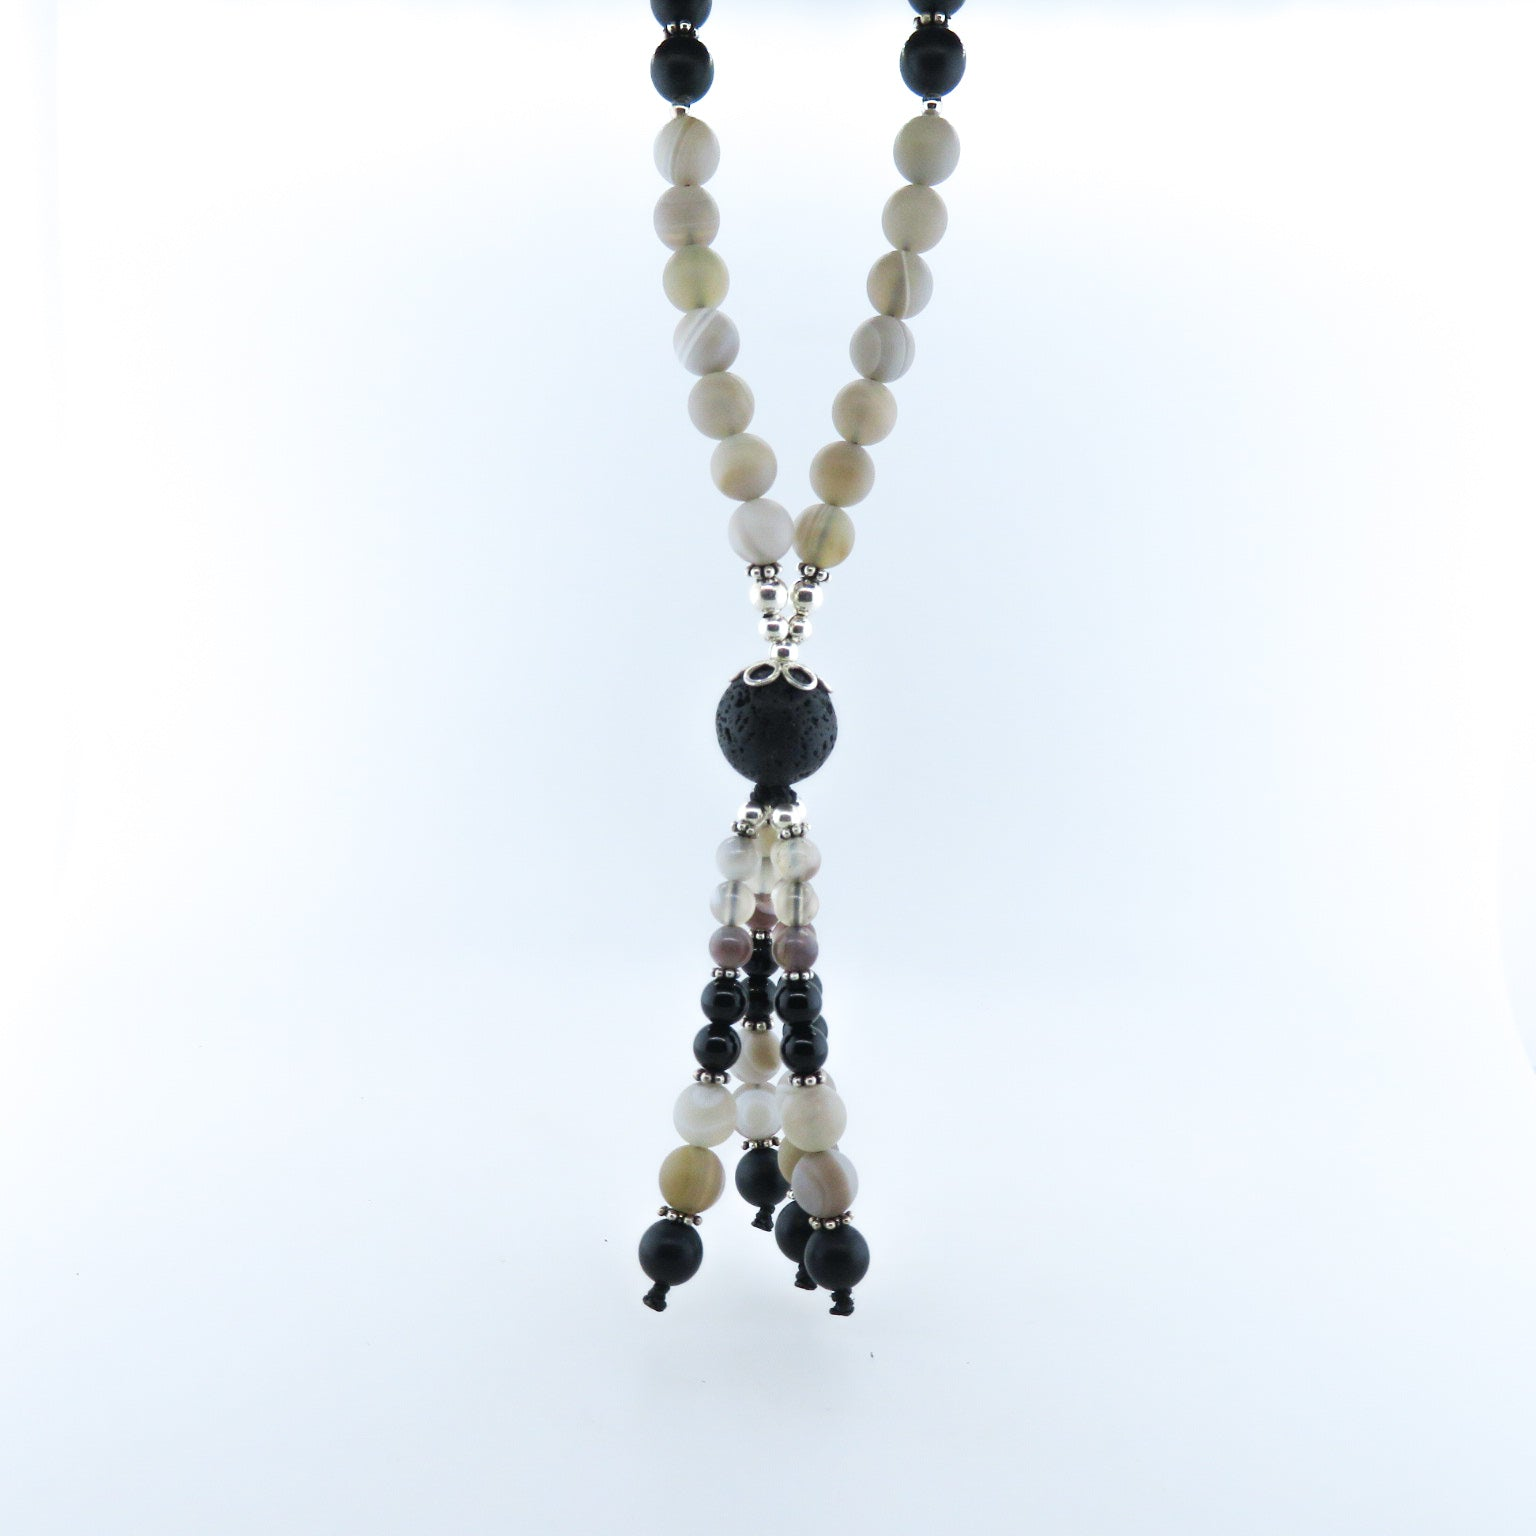 Agate Beads Necklace with Lava, Black Onyx and Silver Beads